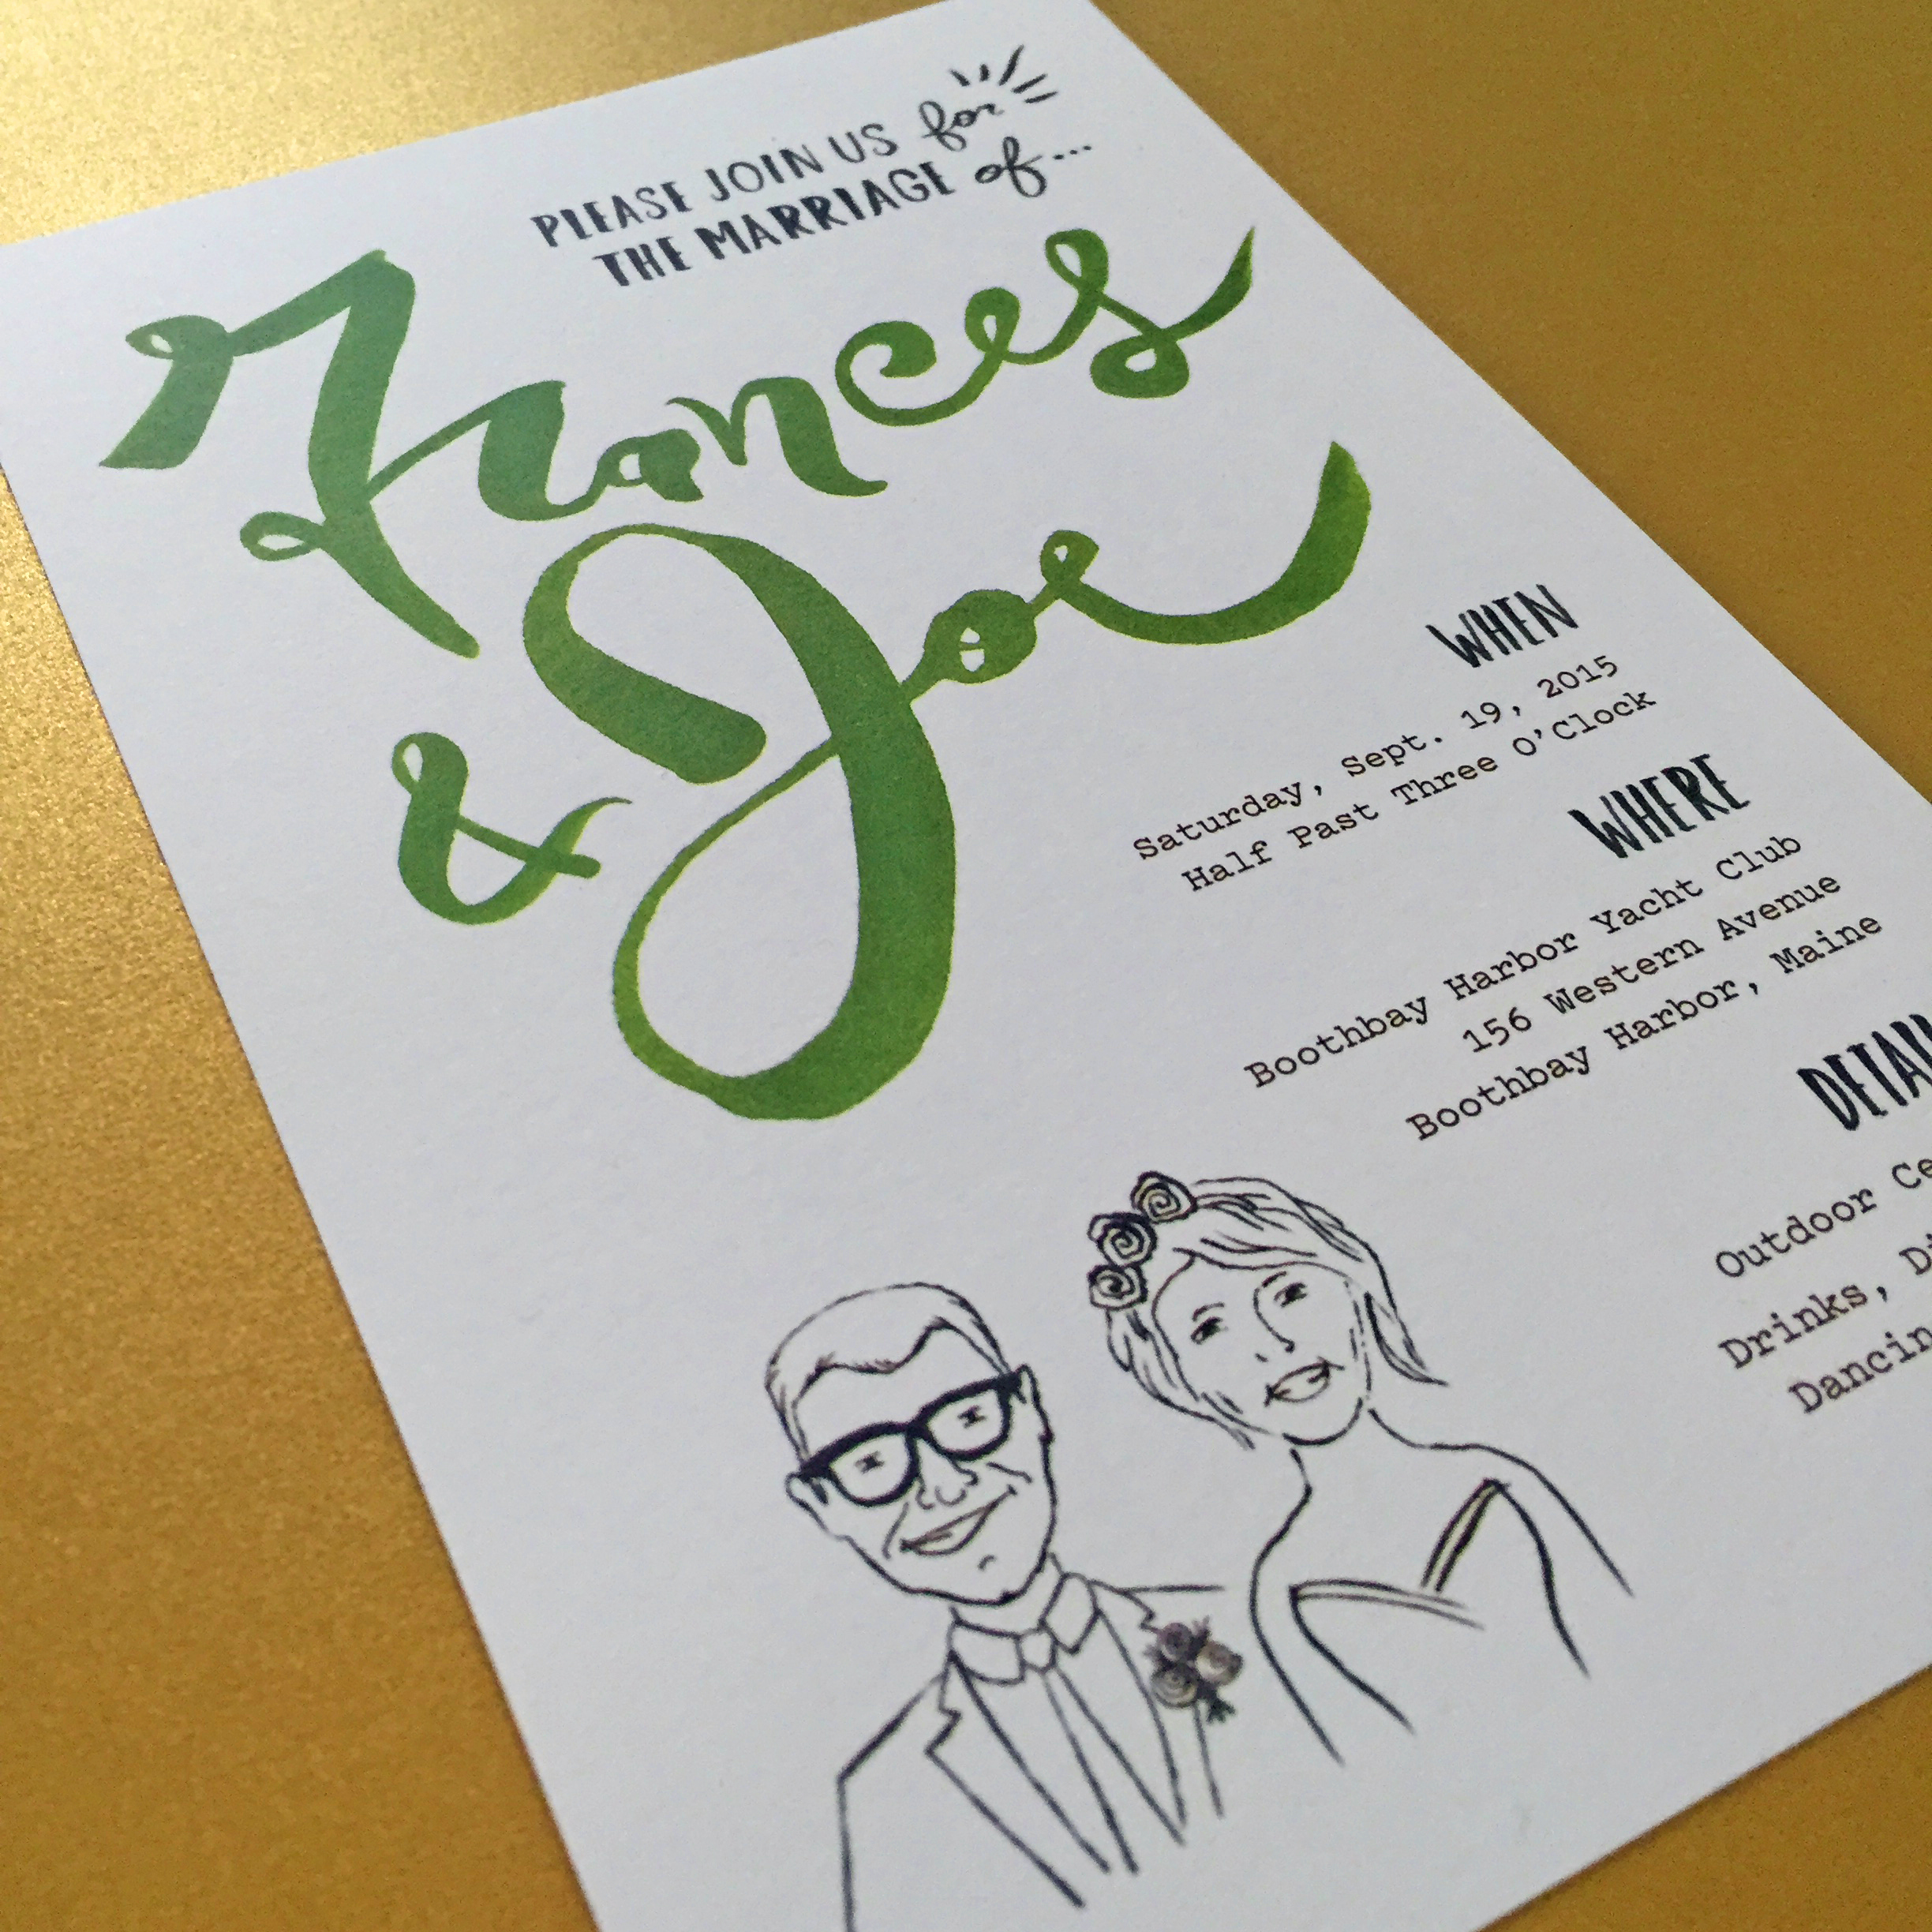 The formal invitation includes a fun illustration of the couple.